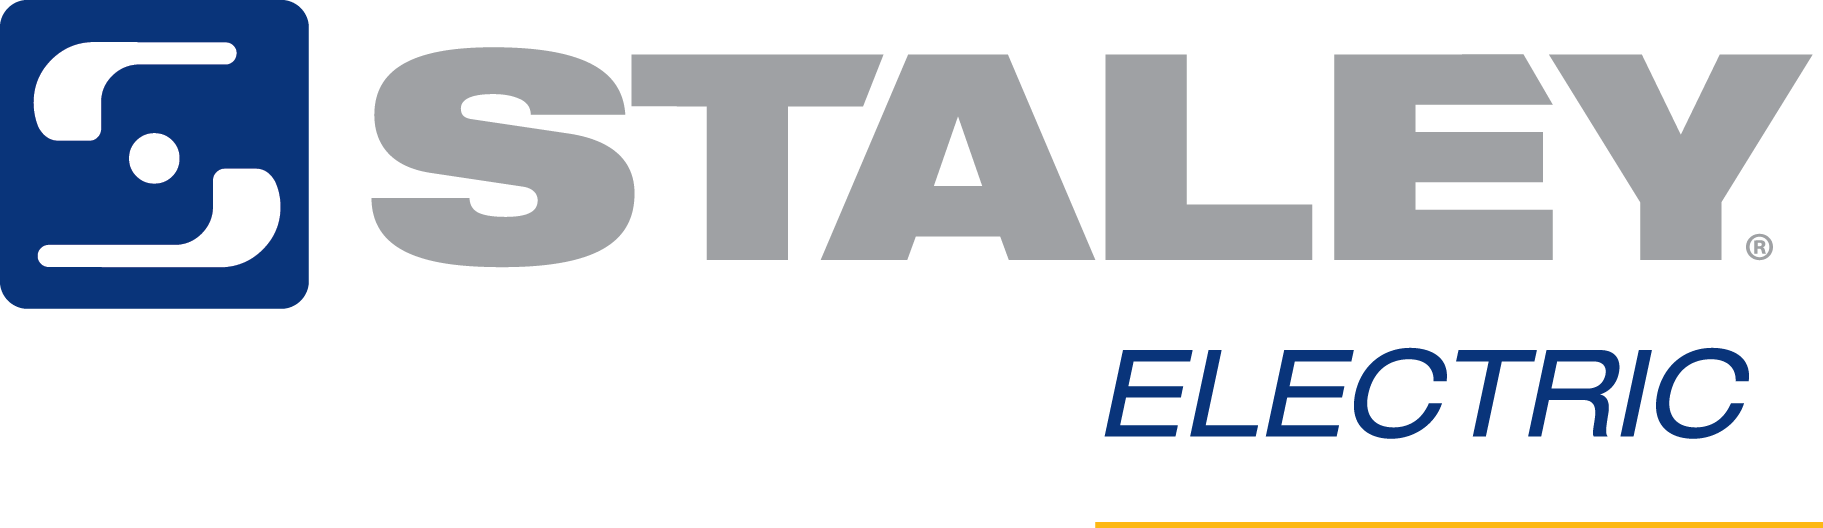 Staley  Electric Services LLC Logo